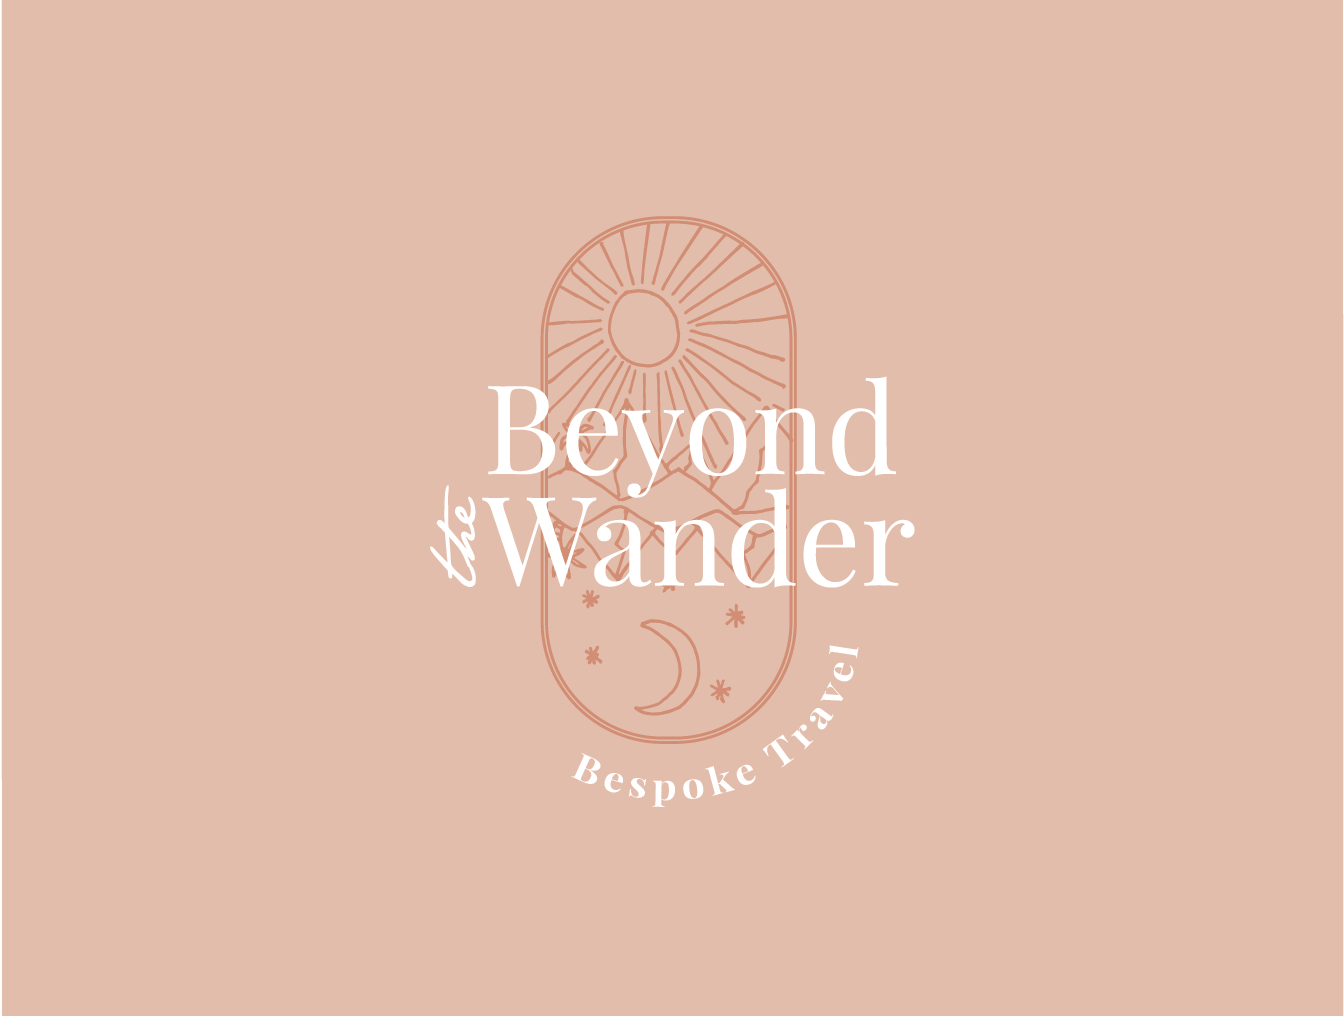 Next Project - Beyond the Wander